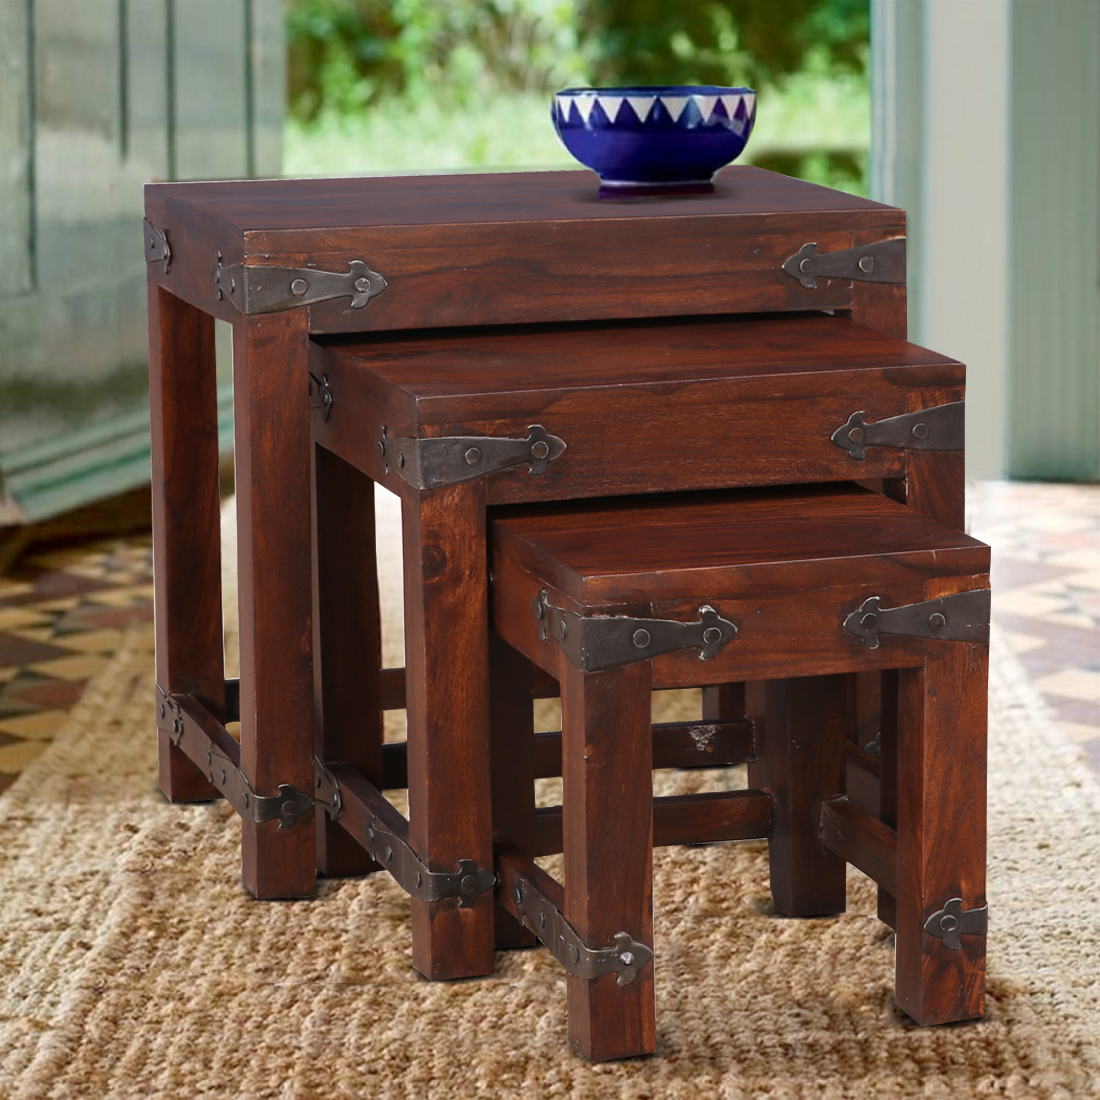 Tudor Solid Wood Nesting Table in Brown Colour by HomeTown